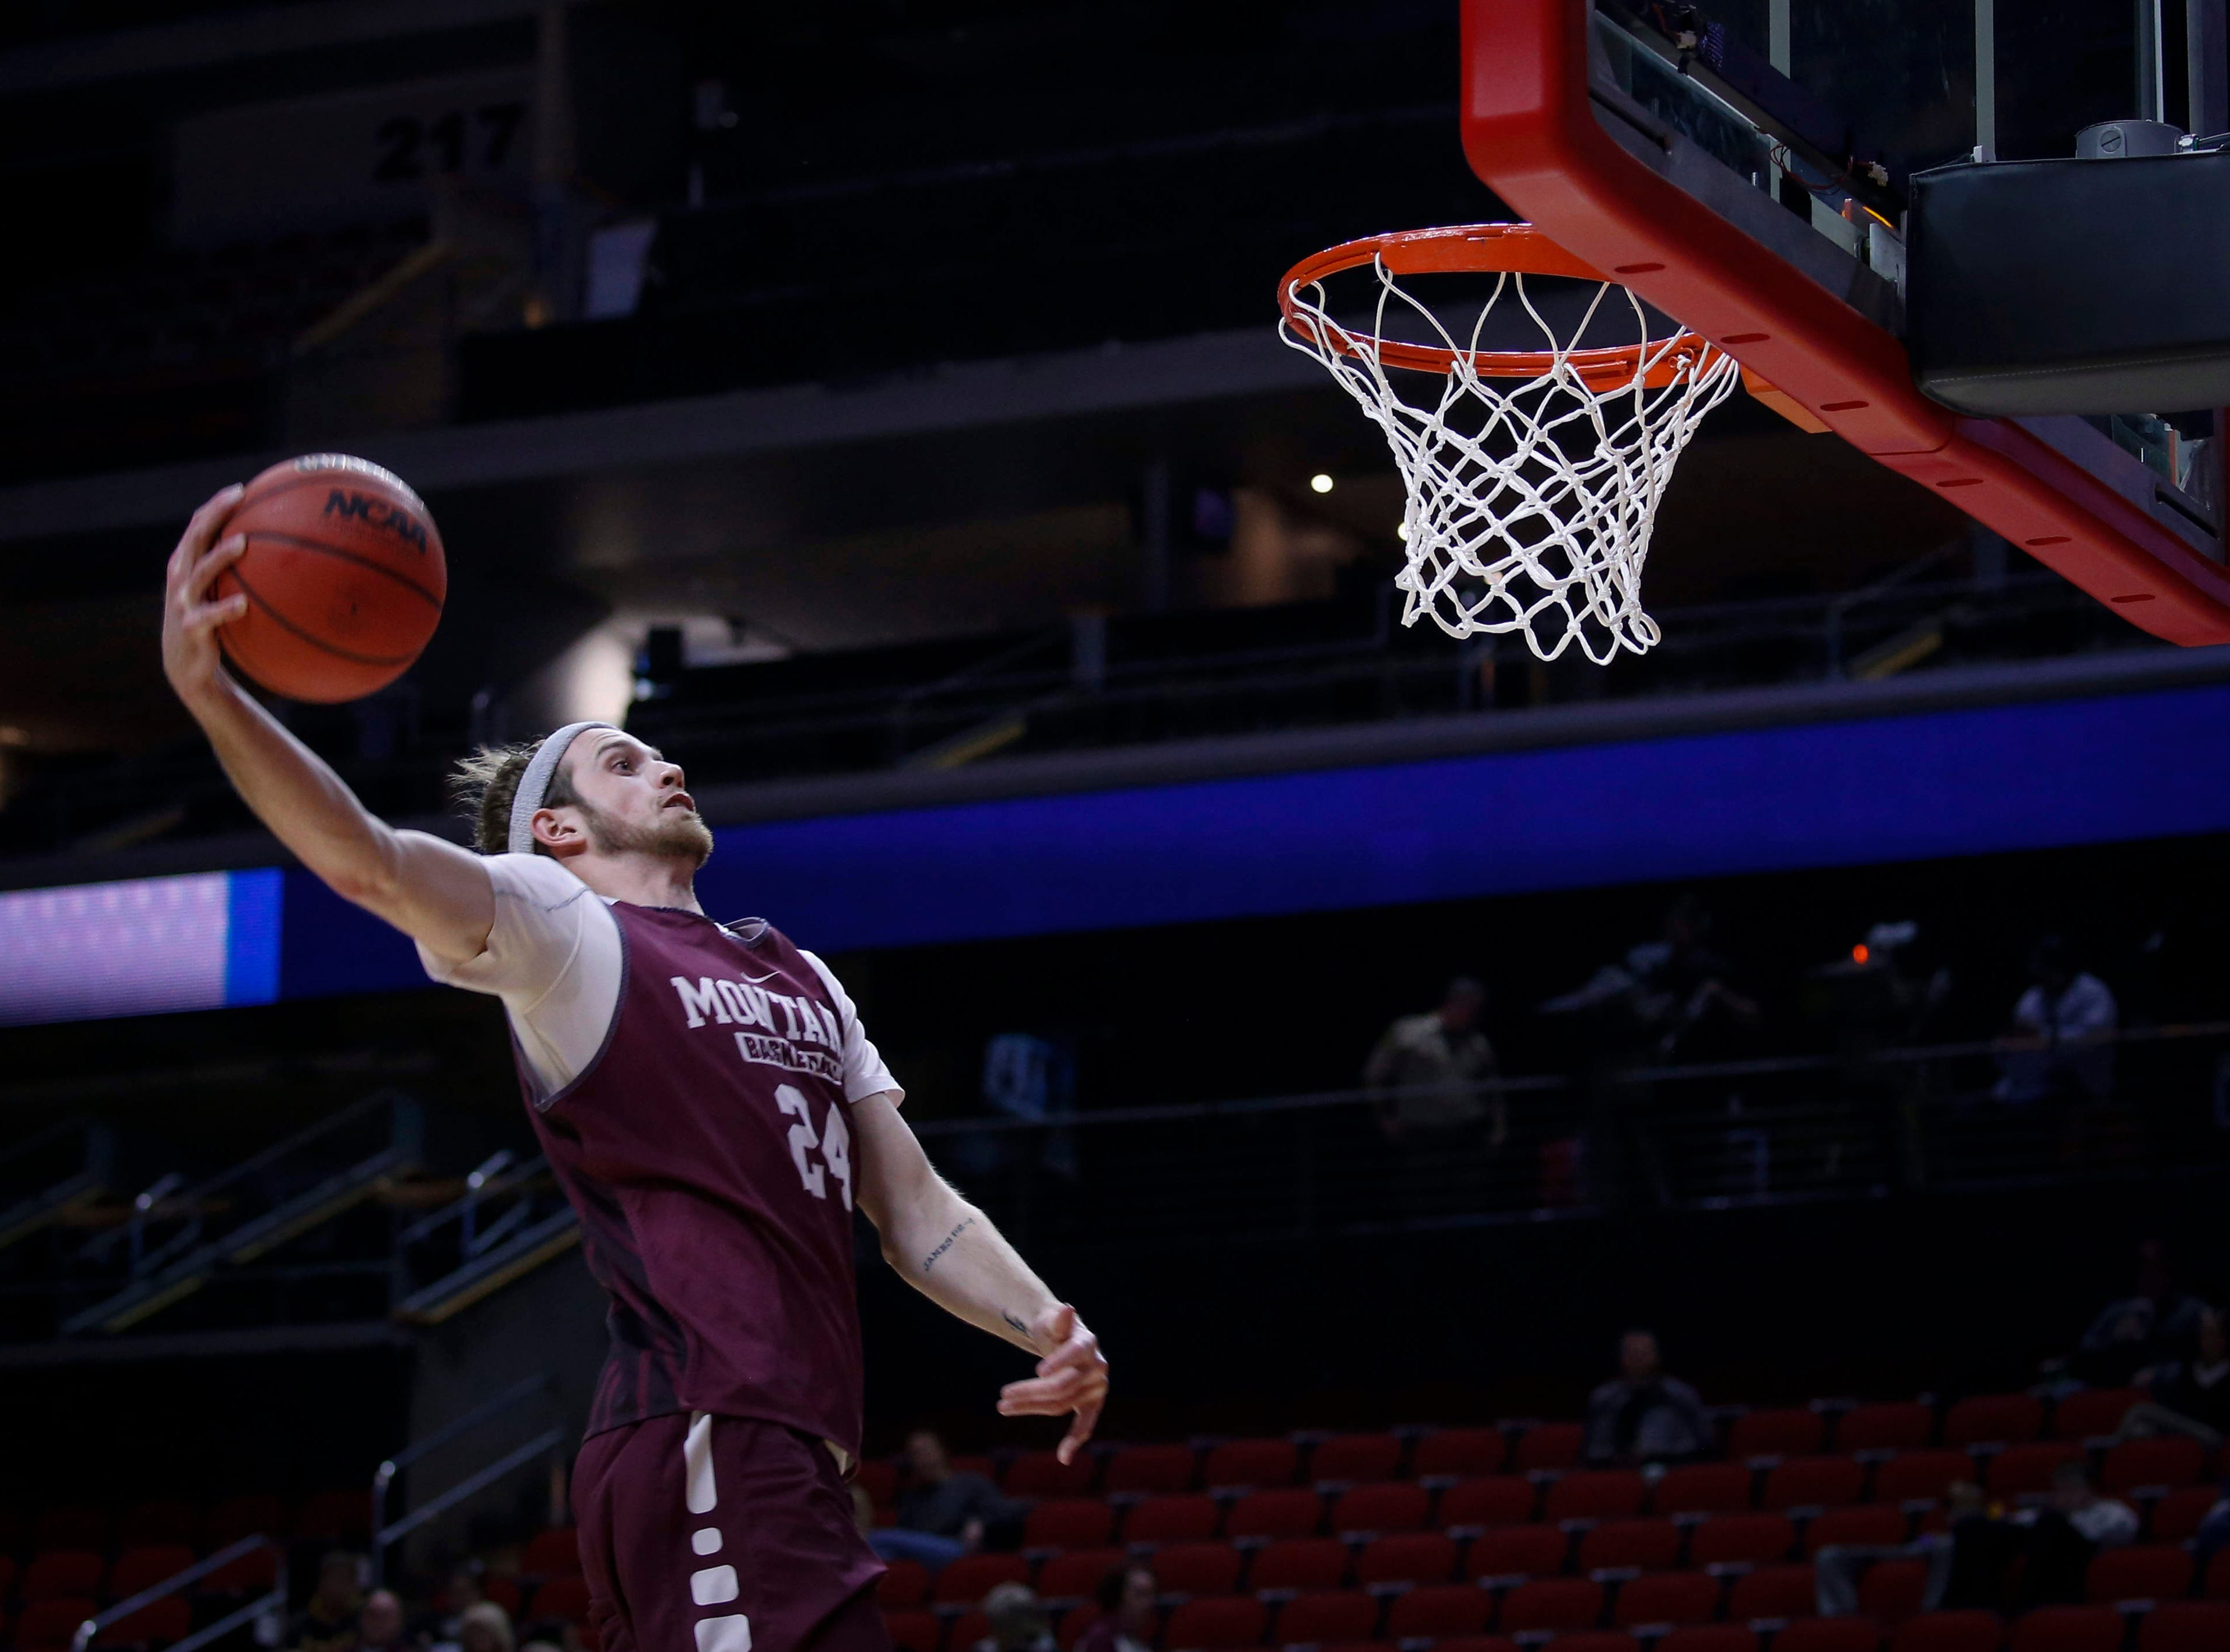 Montana senior Bobby Moorehead dunks the ball during open practice on Wednesday, March 20, 2019, at Wells Fargo Arena in Des Moines, Iowa.